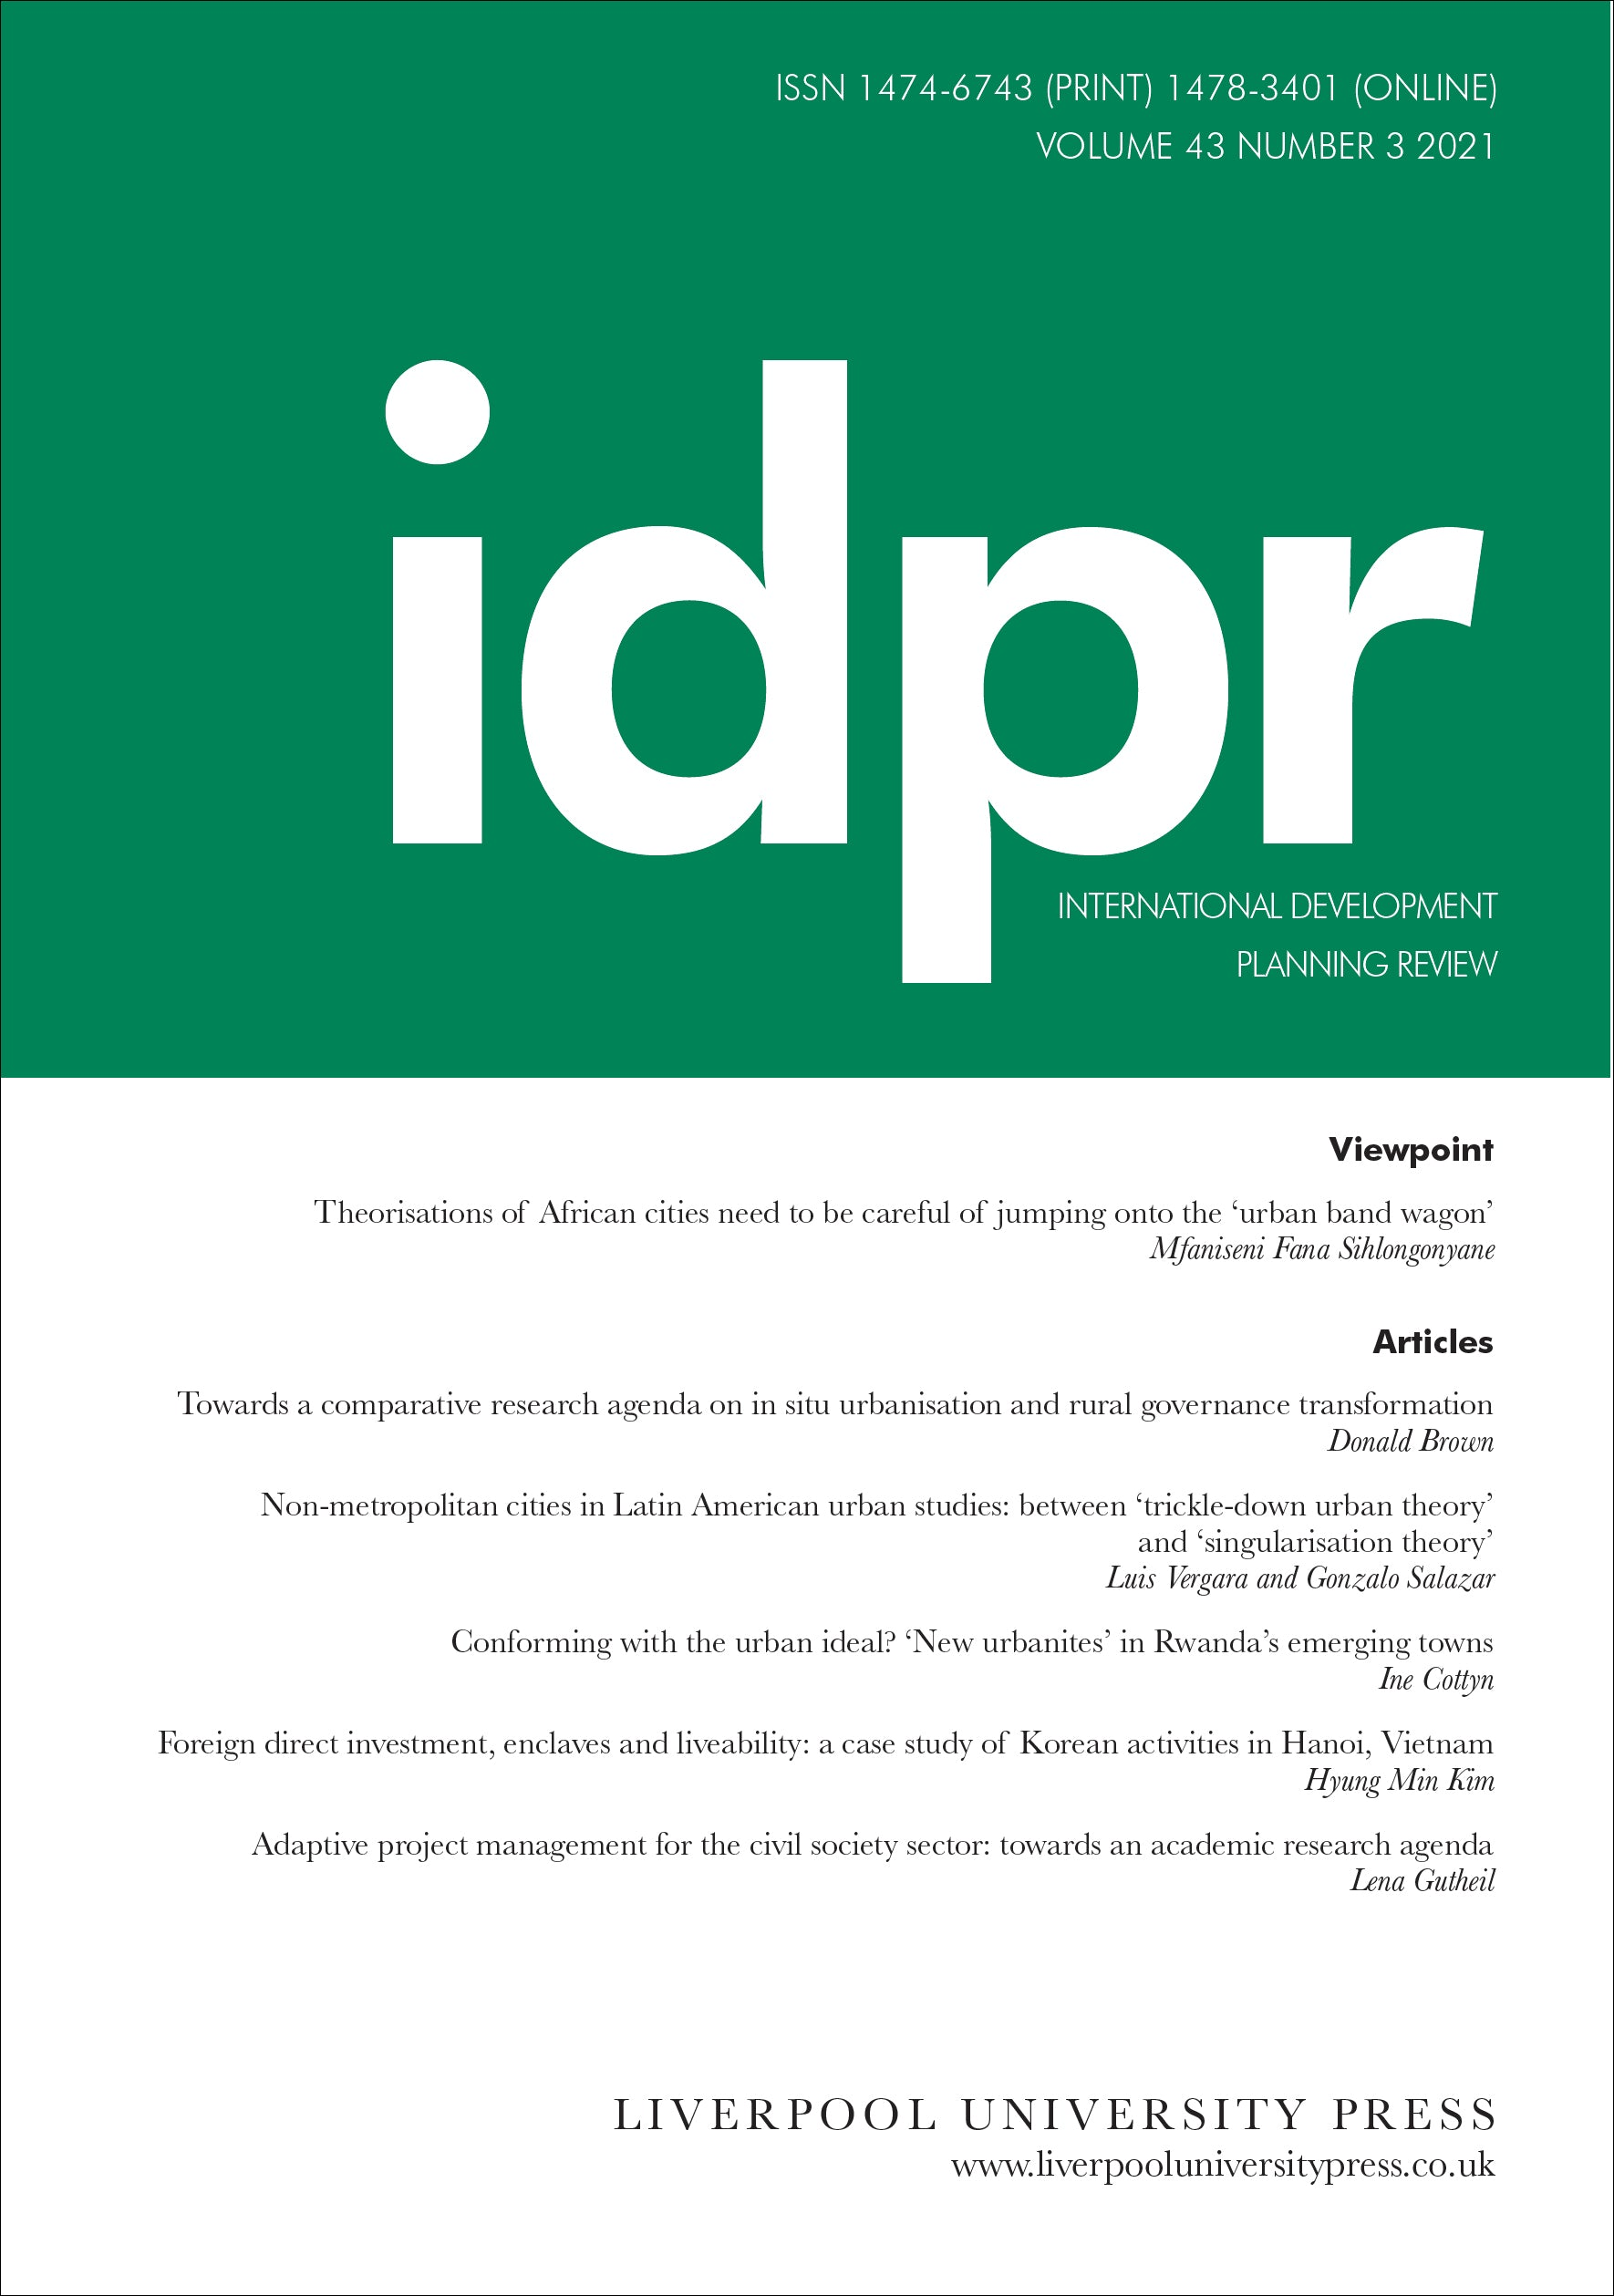 link to International Development Planning Review article